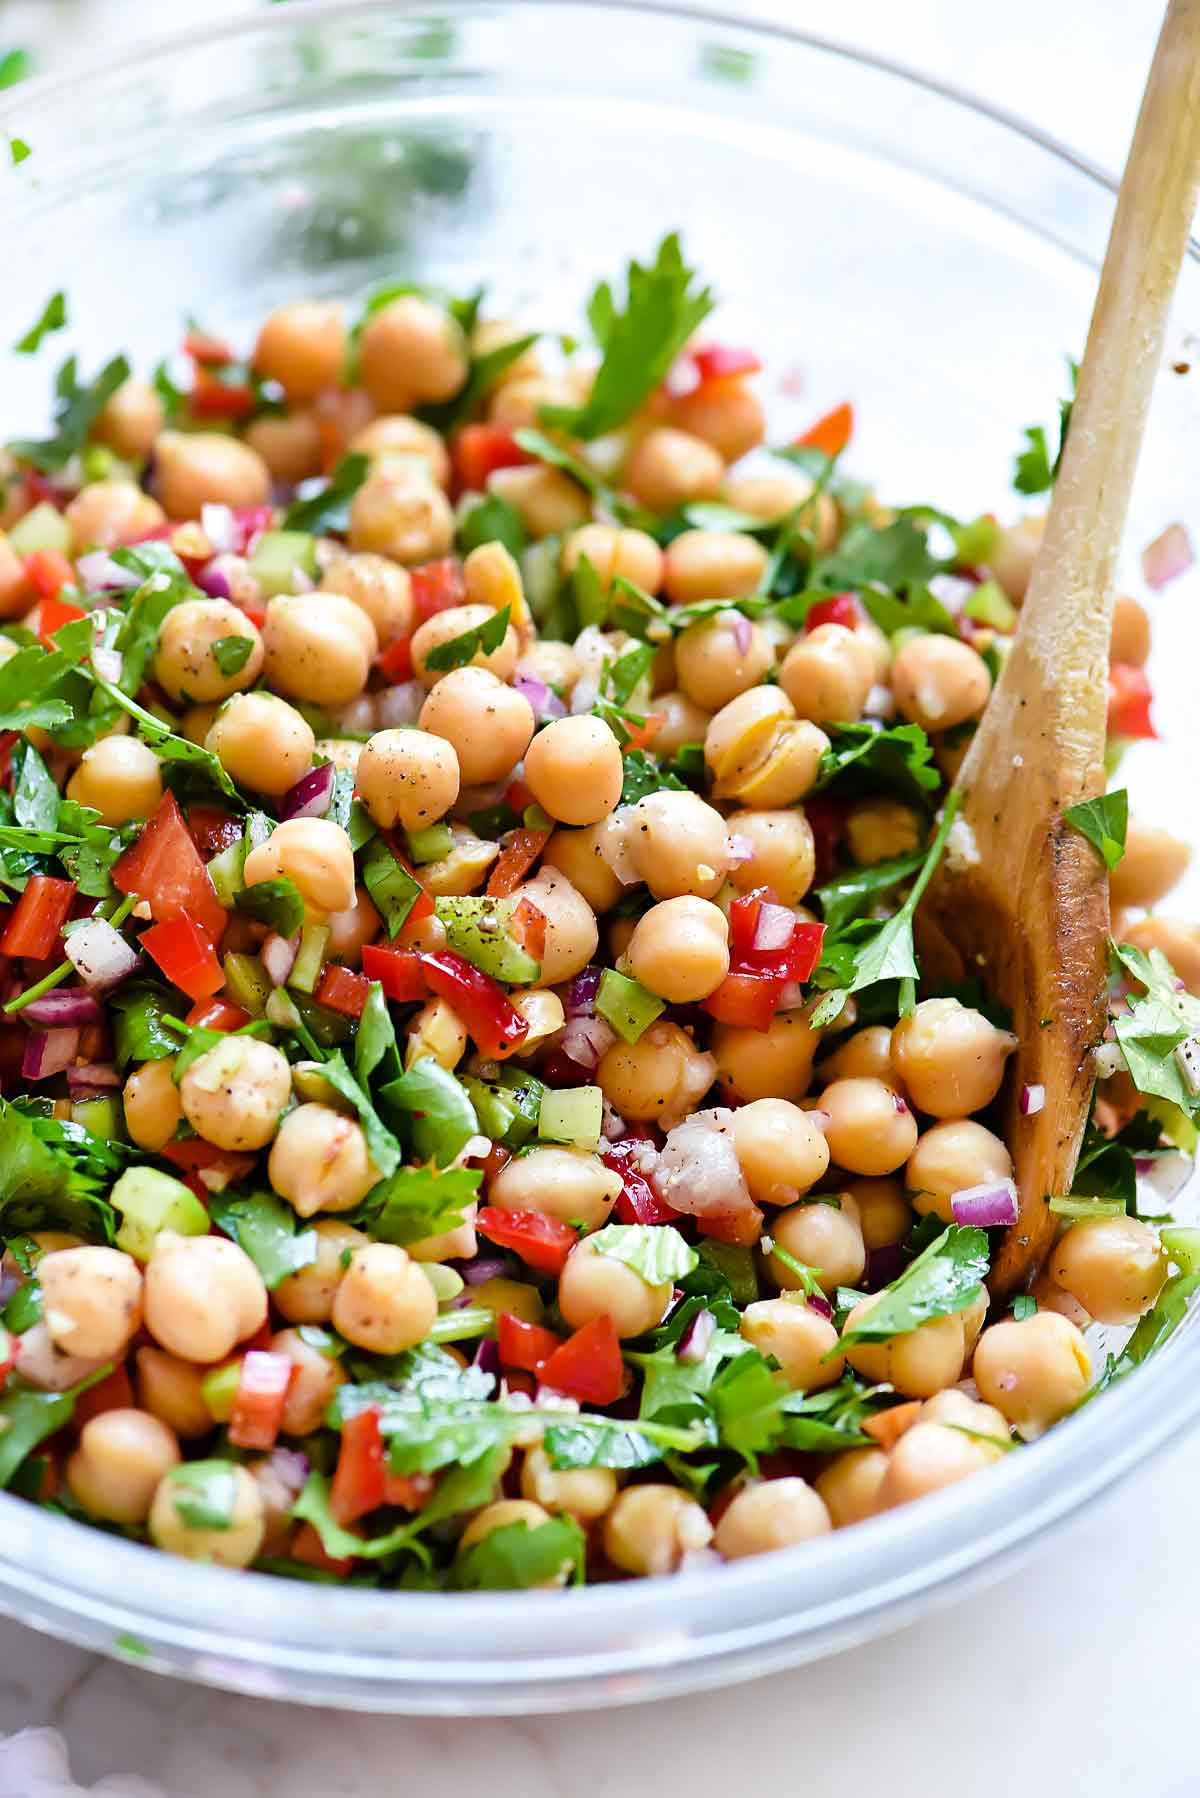 Chickpea Salad Recipes  Outrageous Herbacious Mediterranean Chickpea Salad